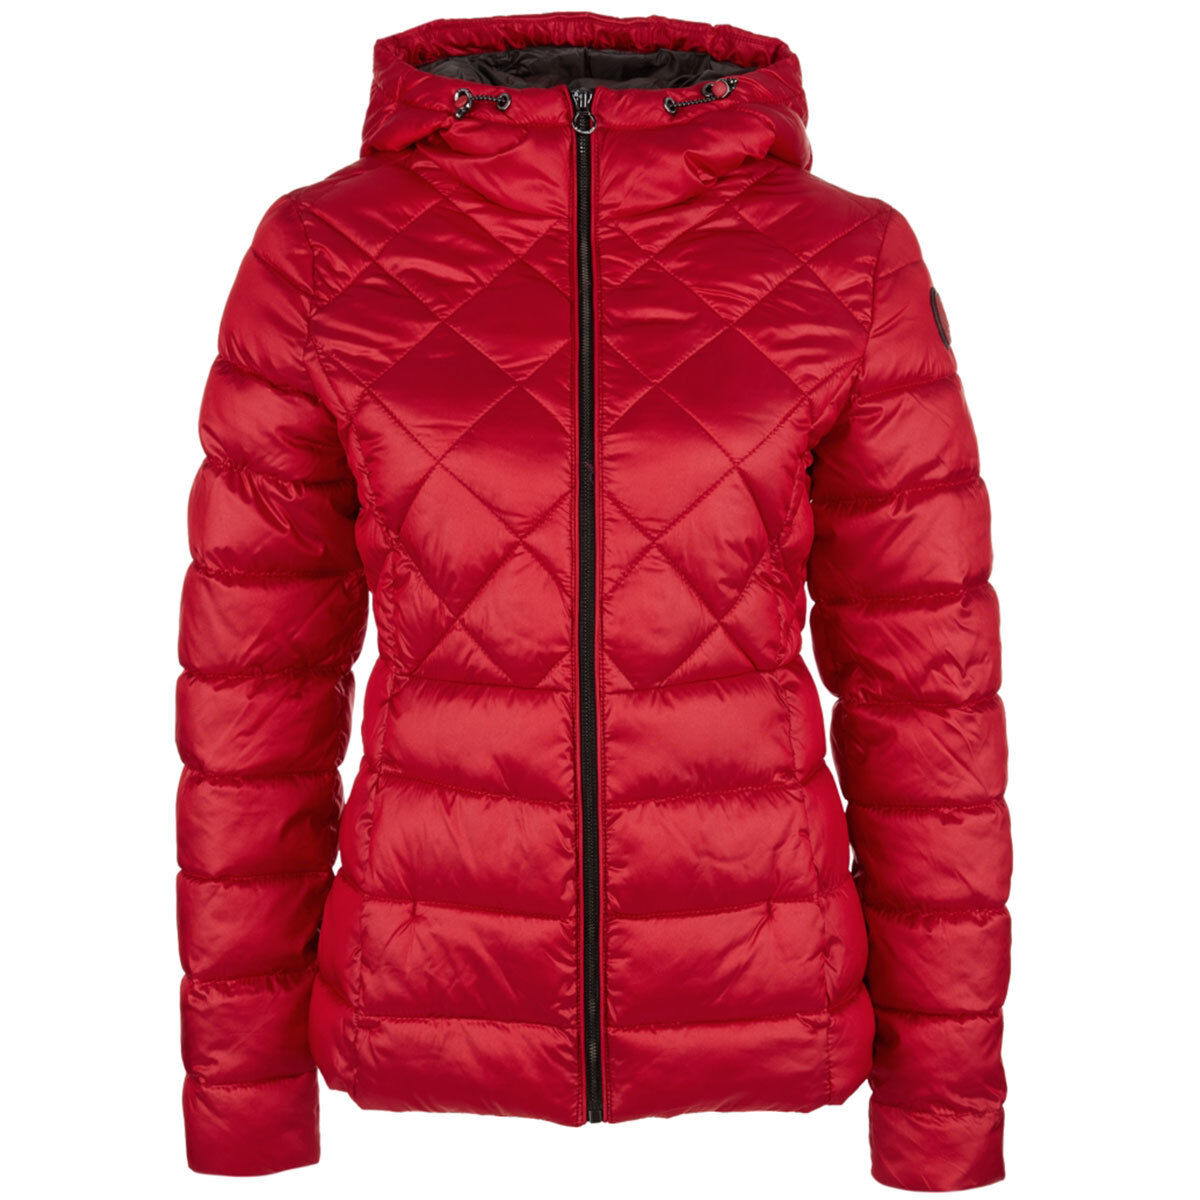 big sale 4f363 27e82 Damen Steppjacke, rot, 42